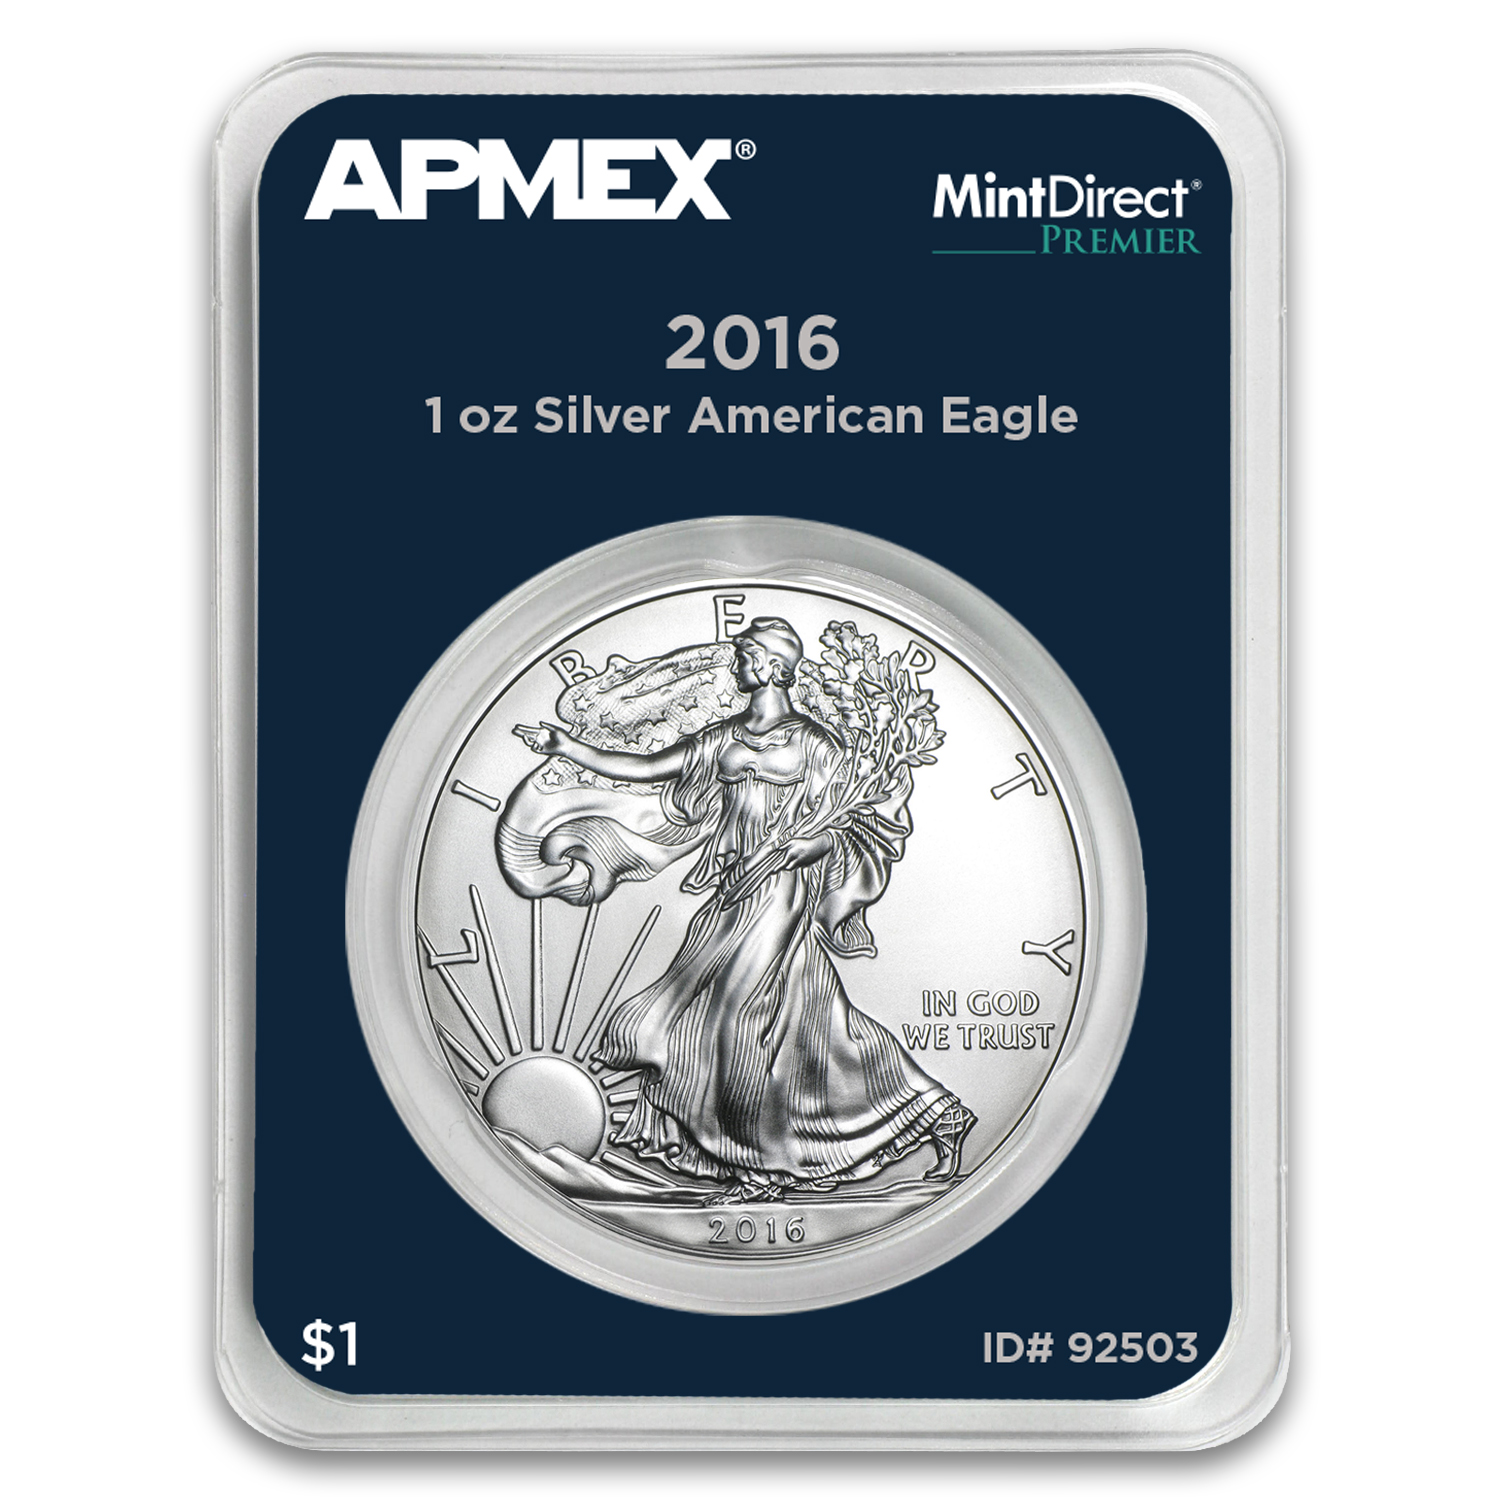 2016 1 oz Silver Eagle (MintDirect® Premier Single)